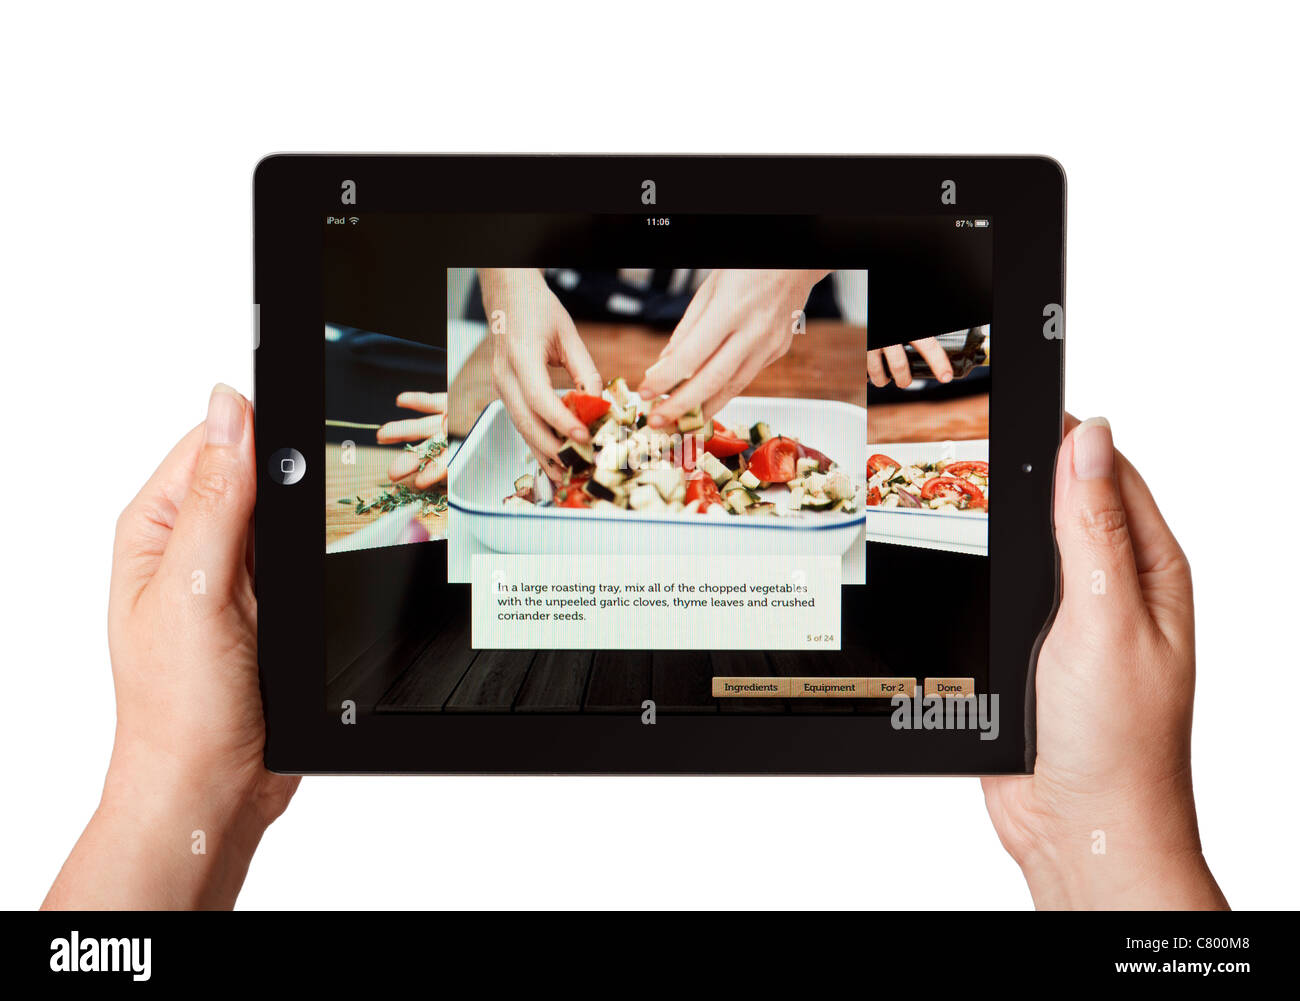 Hands holding an iPad using a cookery app showing how to prepare a meal - Stock Image